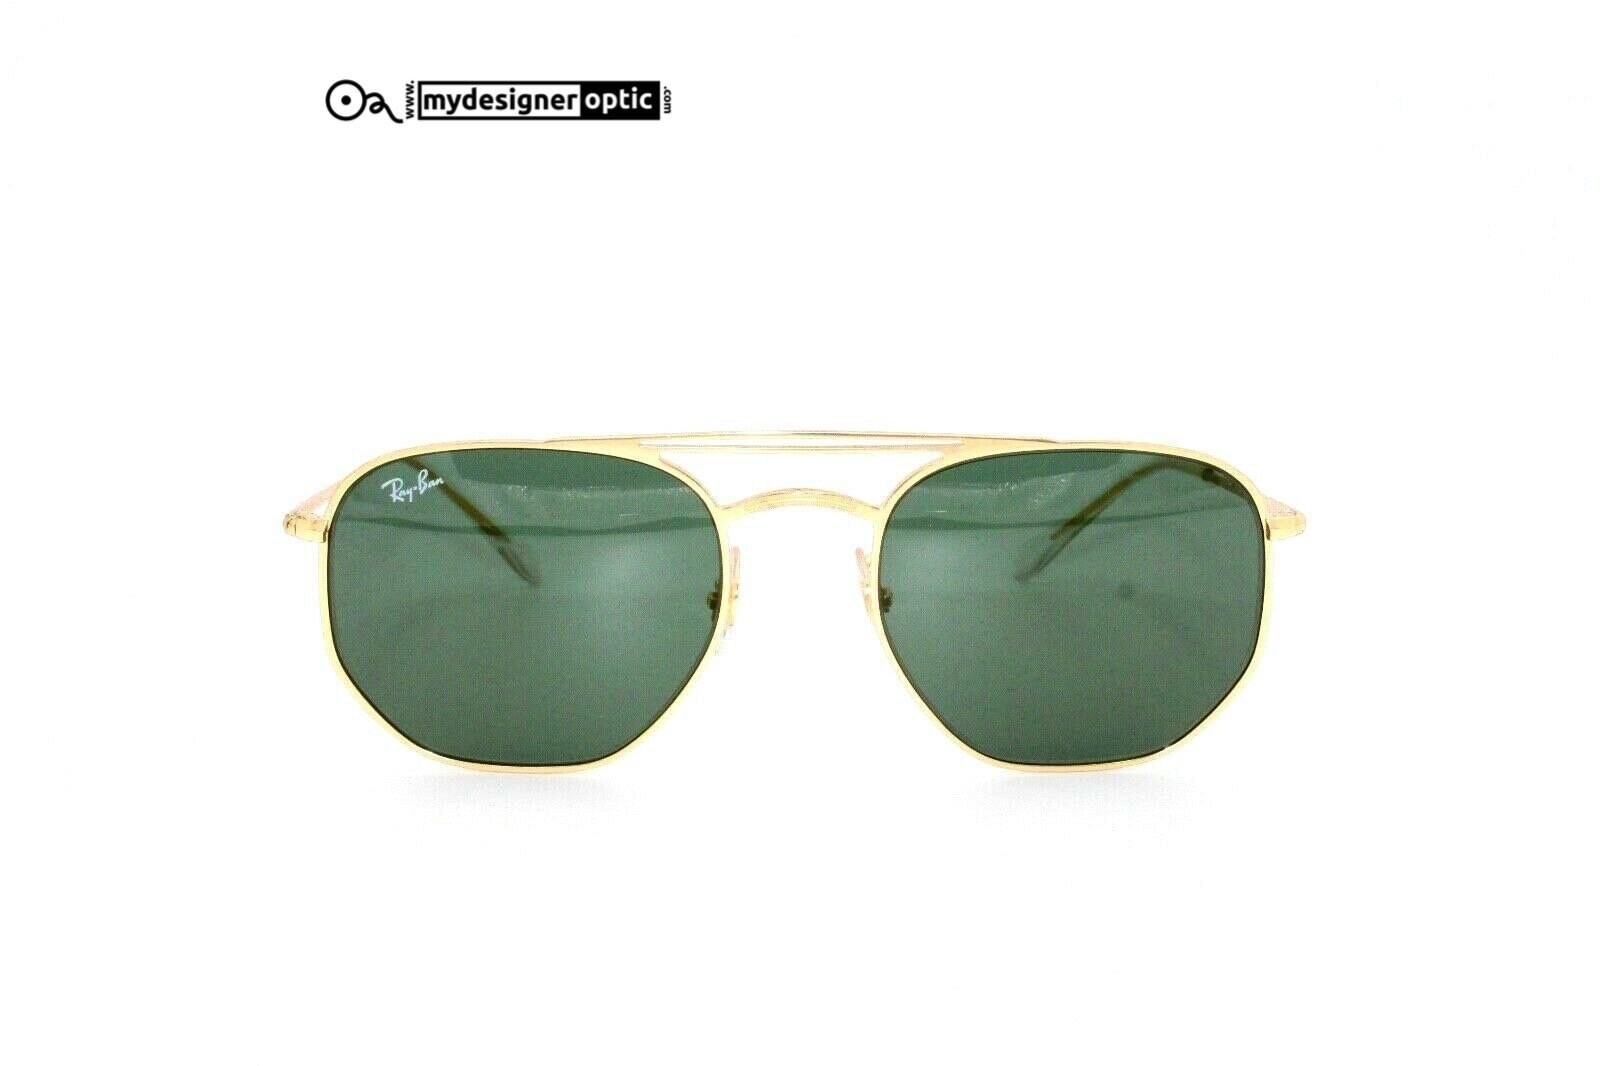 Ray Ban Sunglasses RB 3609 9140/71 54 20 145 3N Made in Italy - Mydesigneroptic